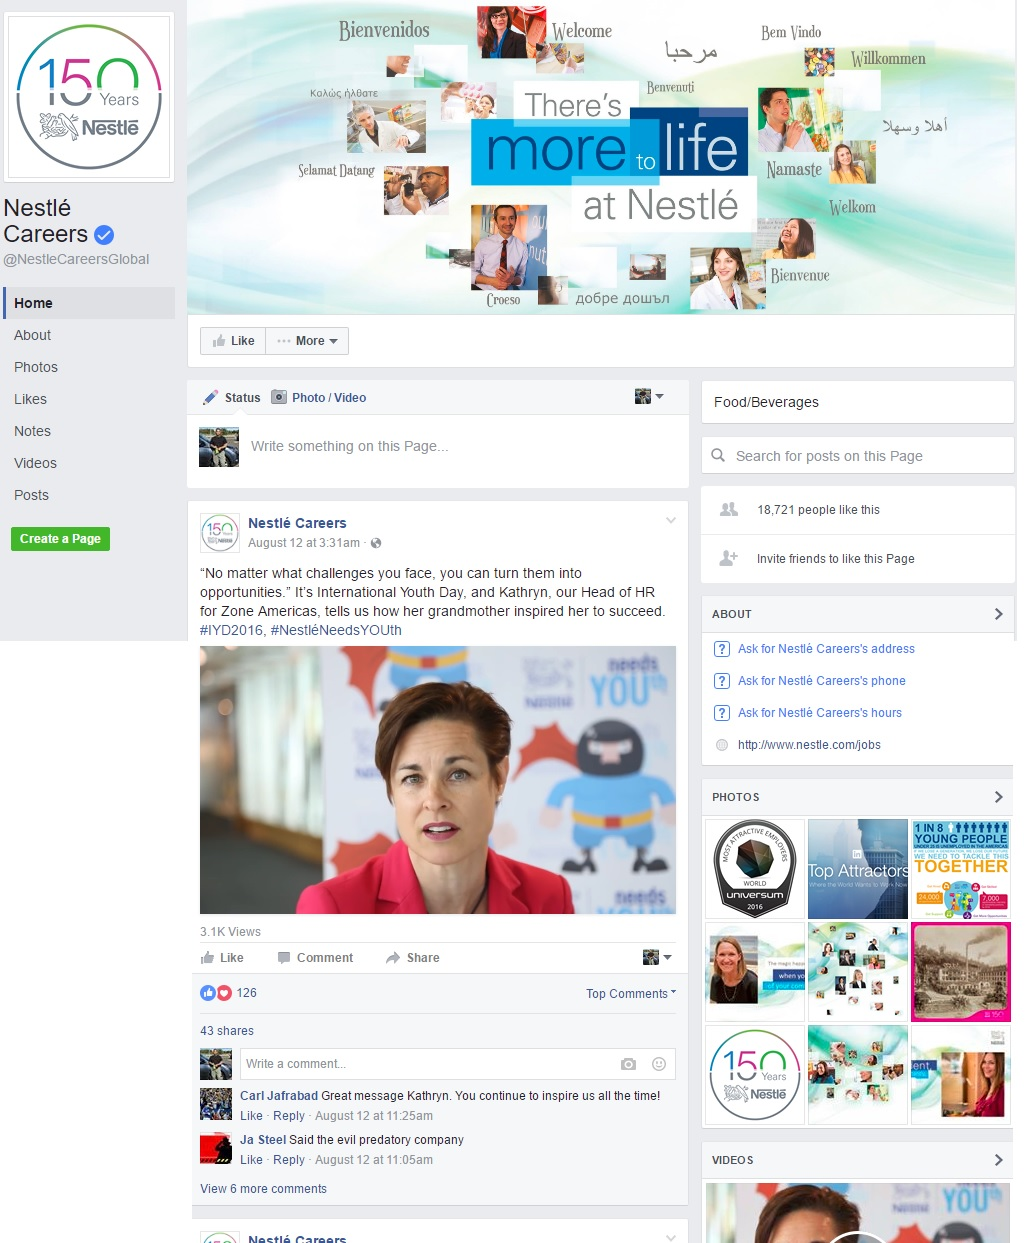 Nestle Facebook Careers Page Whole Ongig Blog